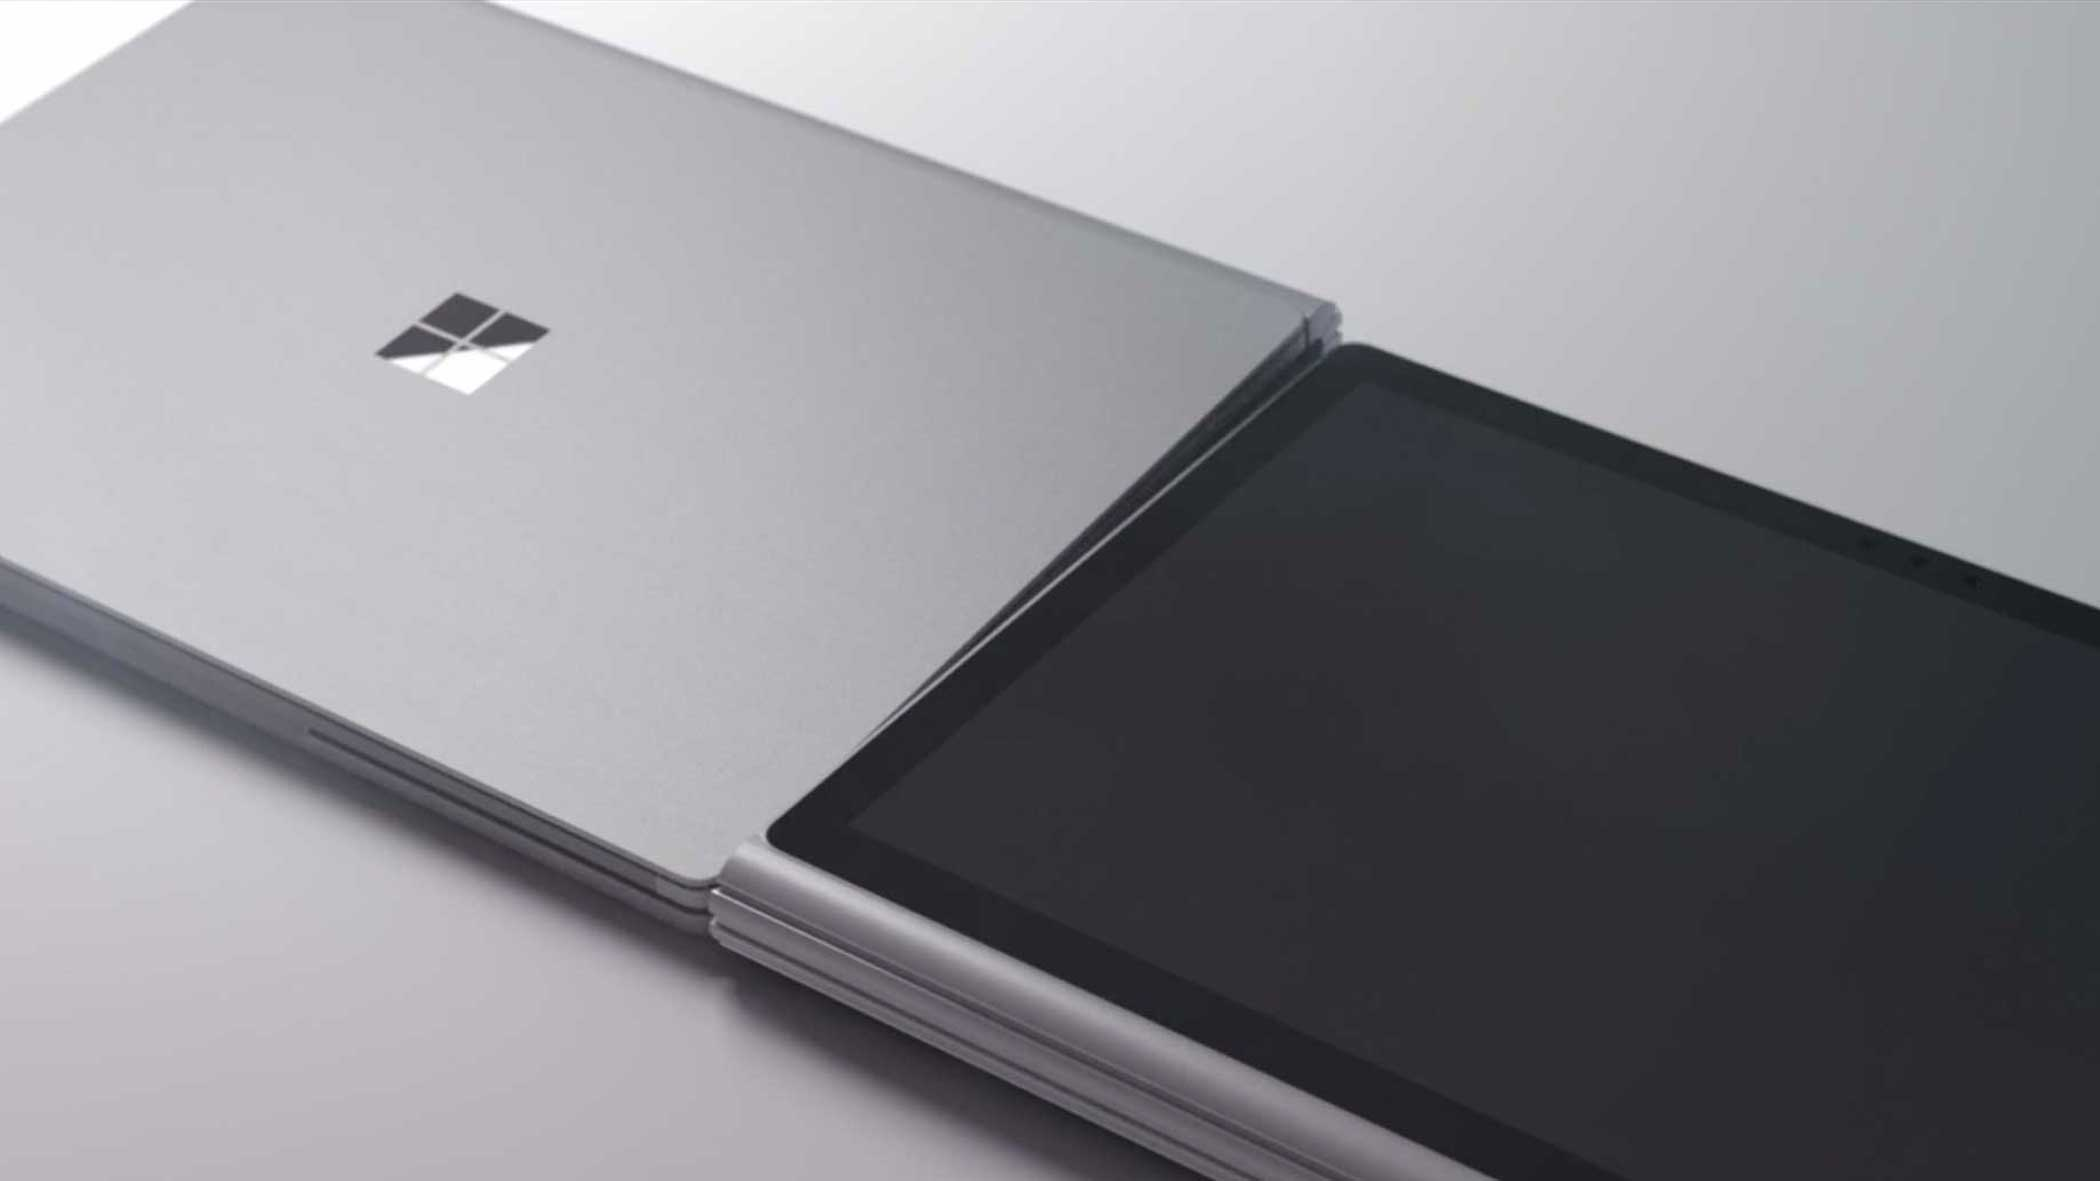 The surface goes onsale October 26 and will retail at $1,499.